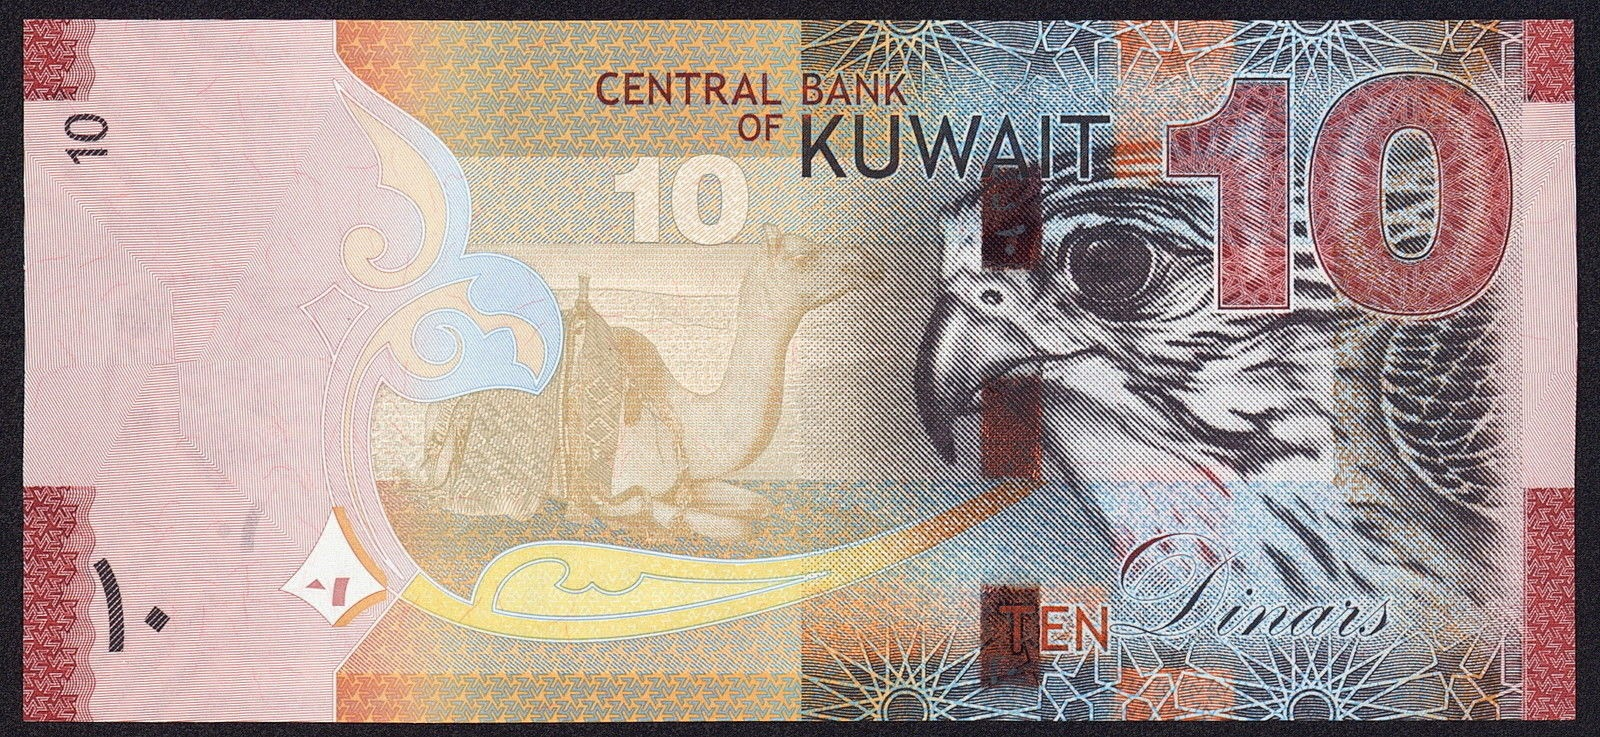 Kuwait money currency 10 Dinars banknote 2014